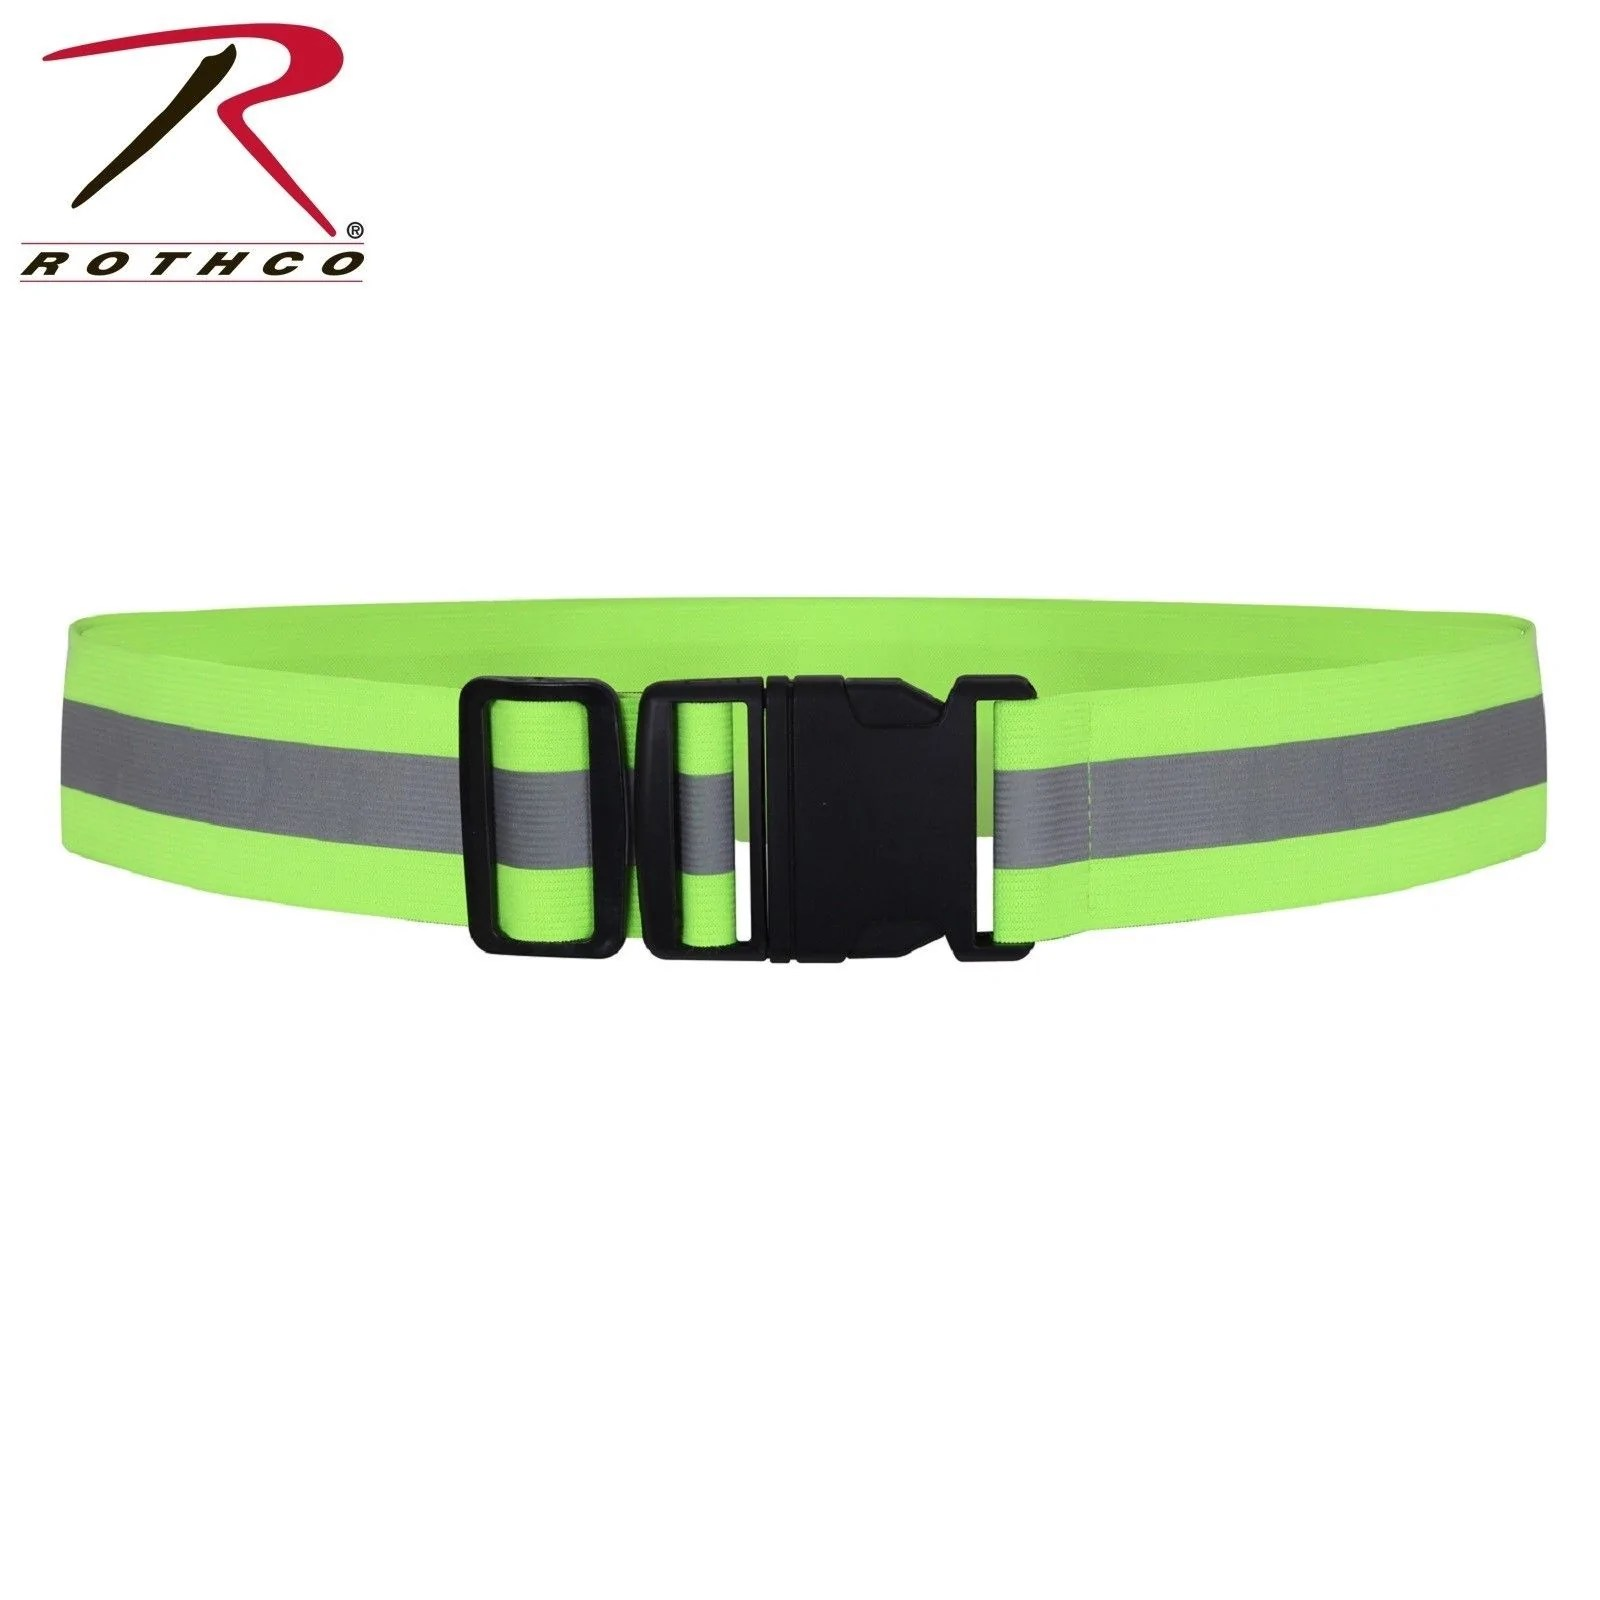 Safety Belt Rothco Reflective Elastic Pt Belt Adjustable Neon Reflective Safety Belt